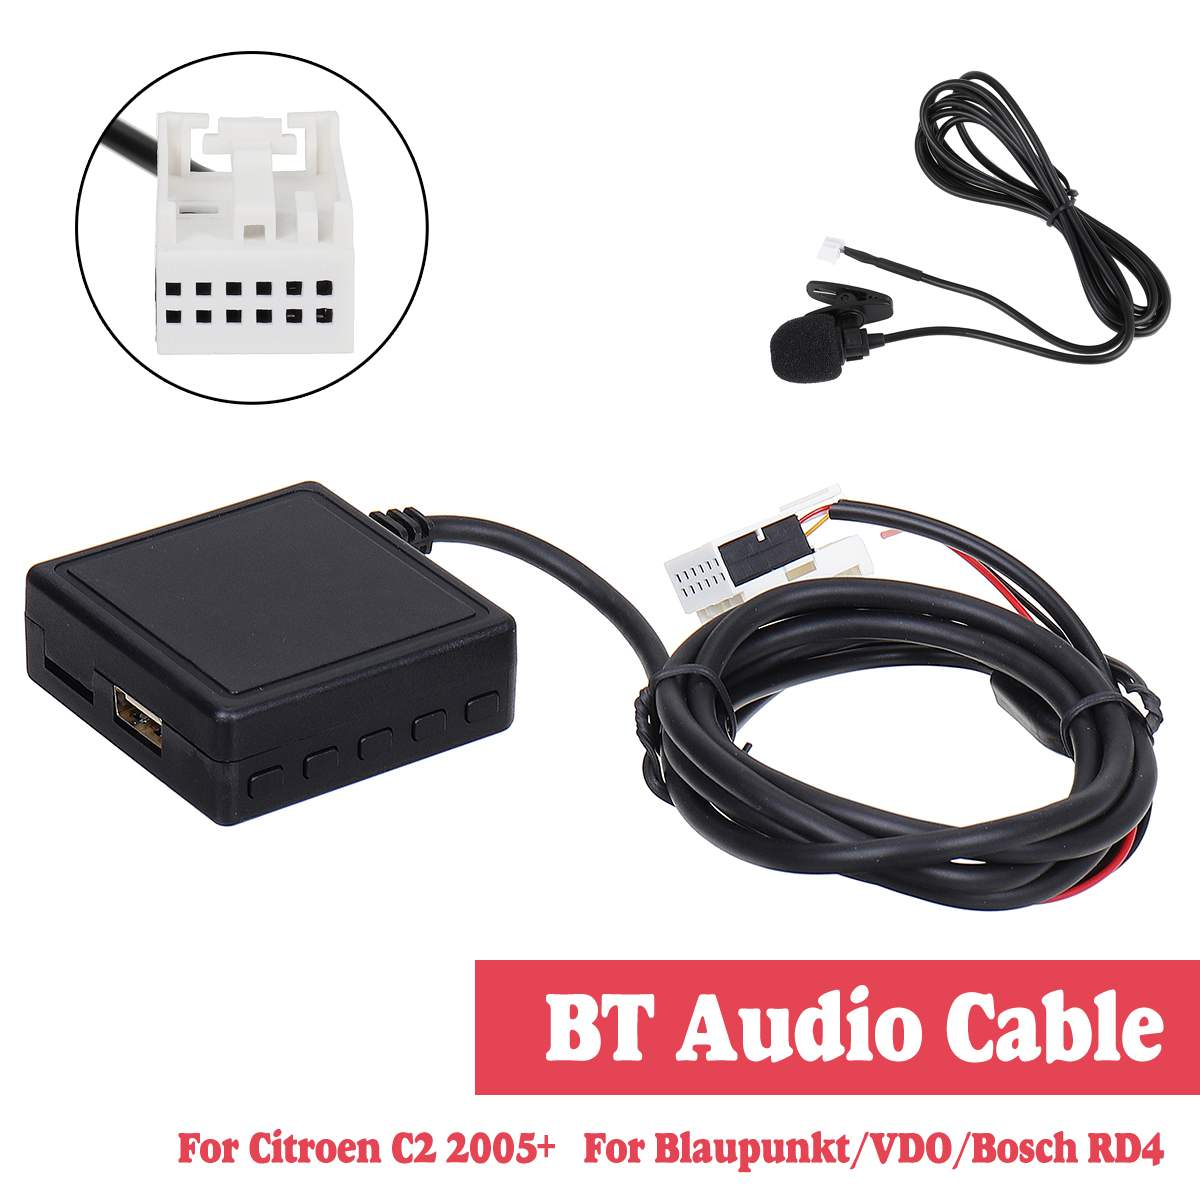 HIFI Audio <font><b>Car</b></font> <font><b>bluetooth</b></font> <font><b>5.0</b></font> Module AUX Microphone Cable <font><b>Adapter</b></font> Radio Stereo For Citroen C2 For Peugeot 307 408 807 1007 image